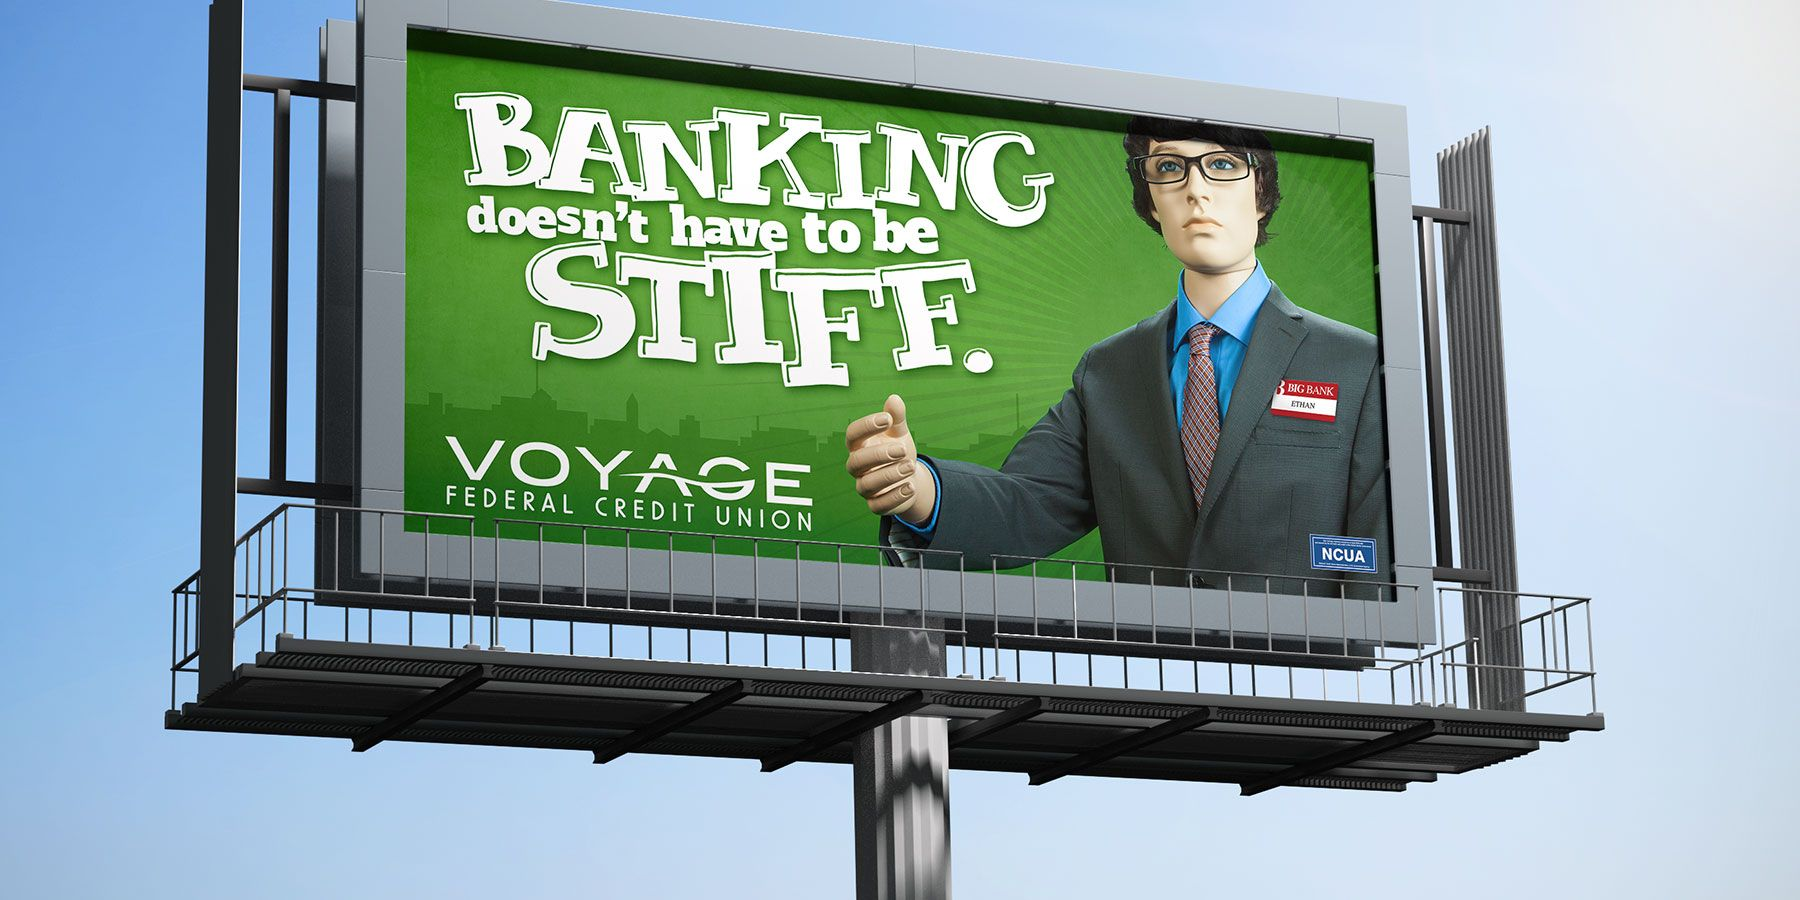 You don't want stiff banking, or stiff advertising! Voyage Federal Credit Union would agree. http://voyagefcu.org